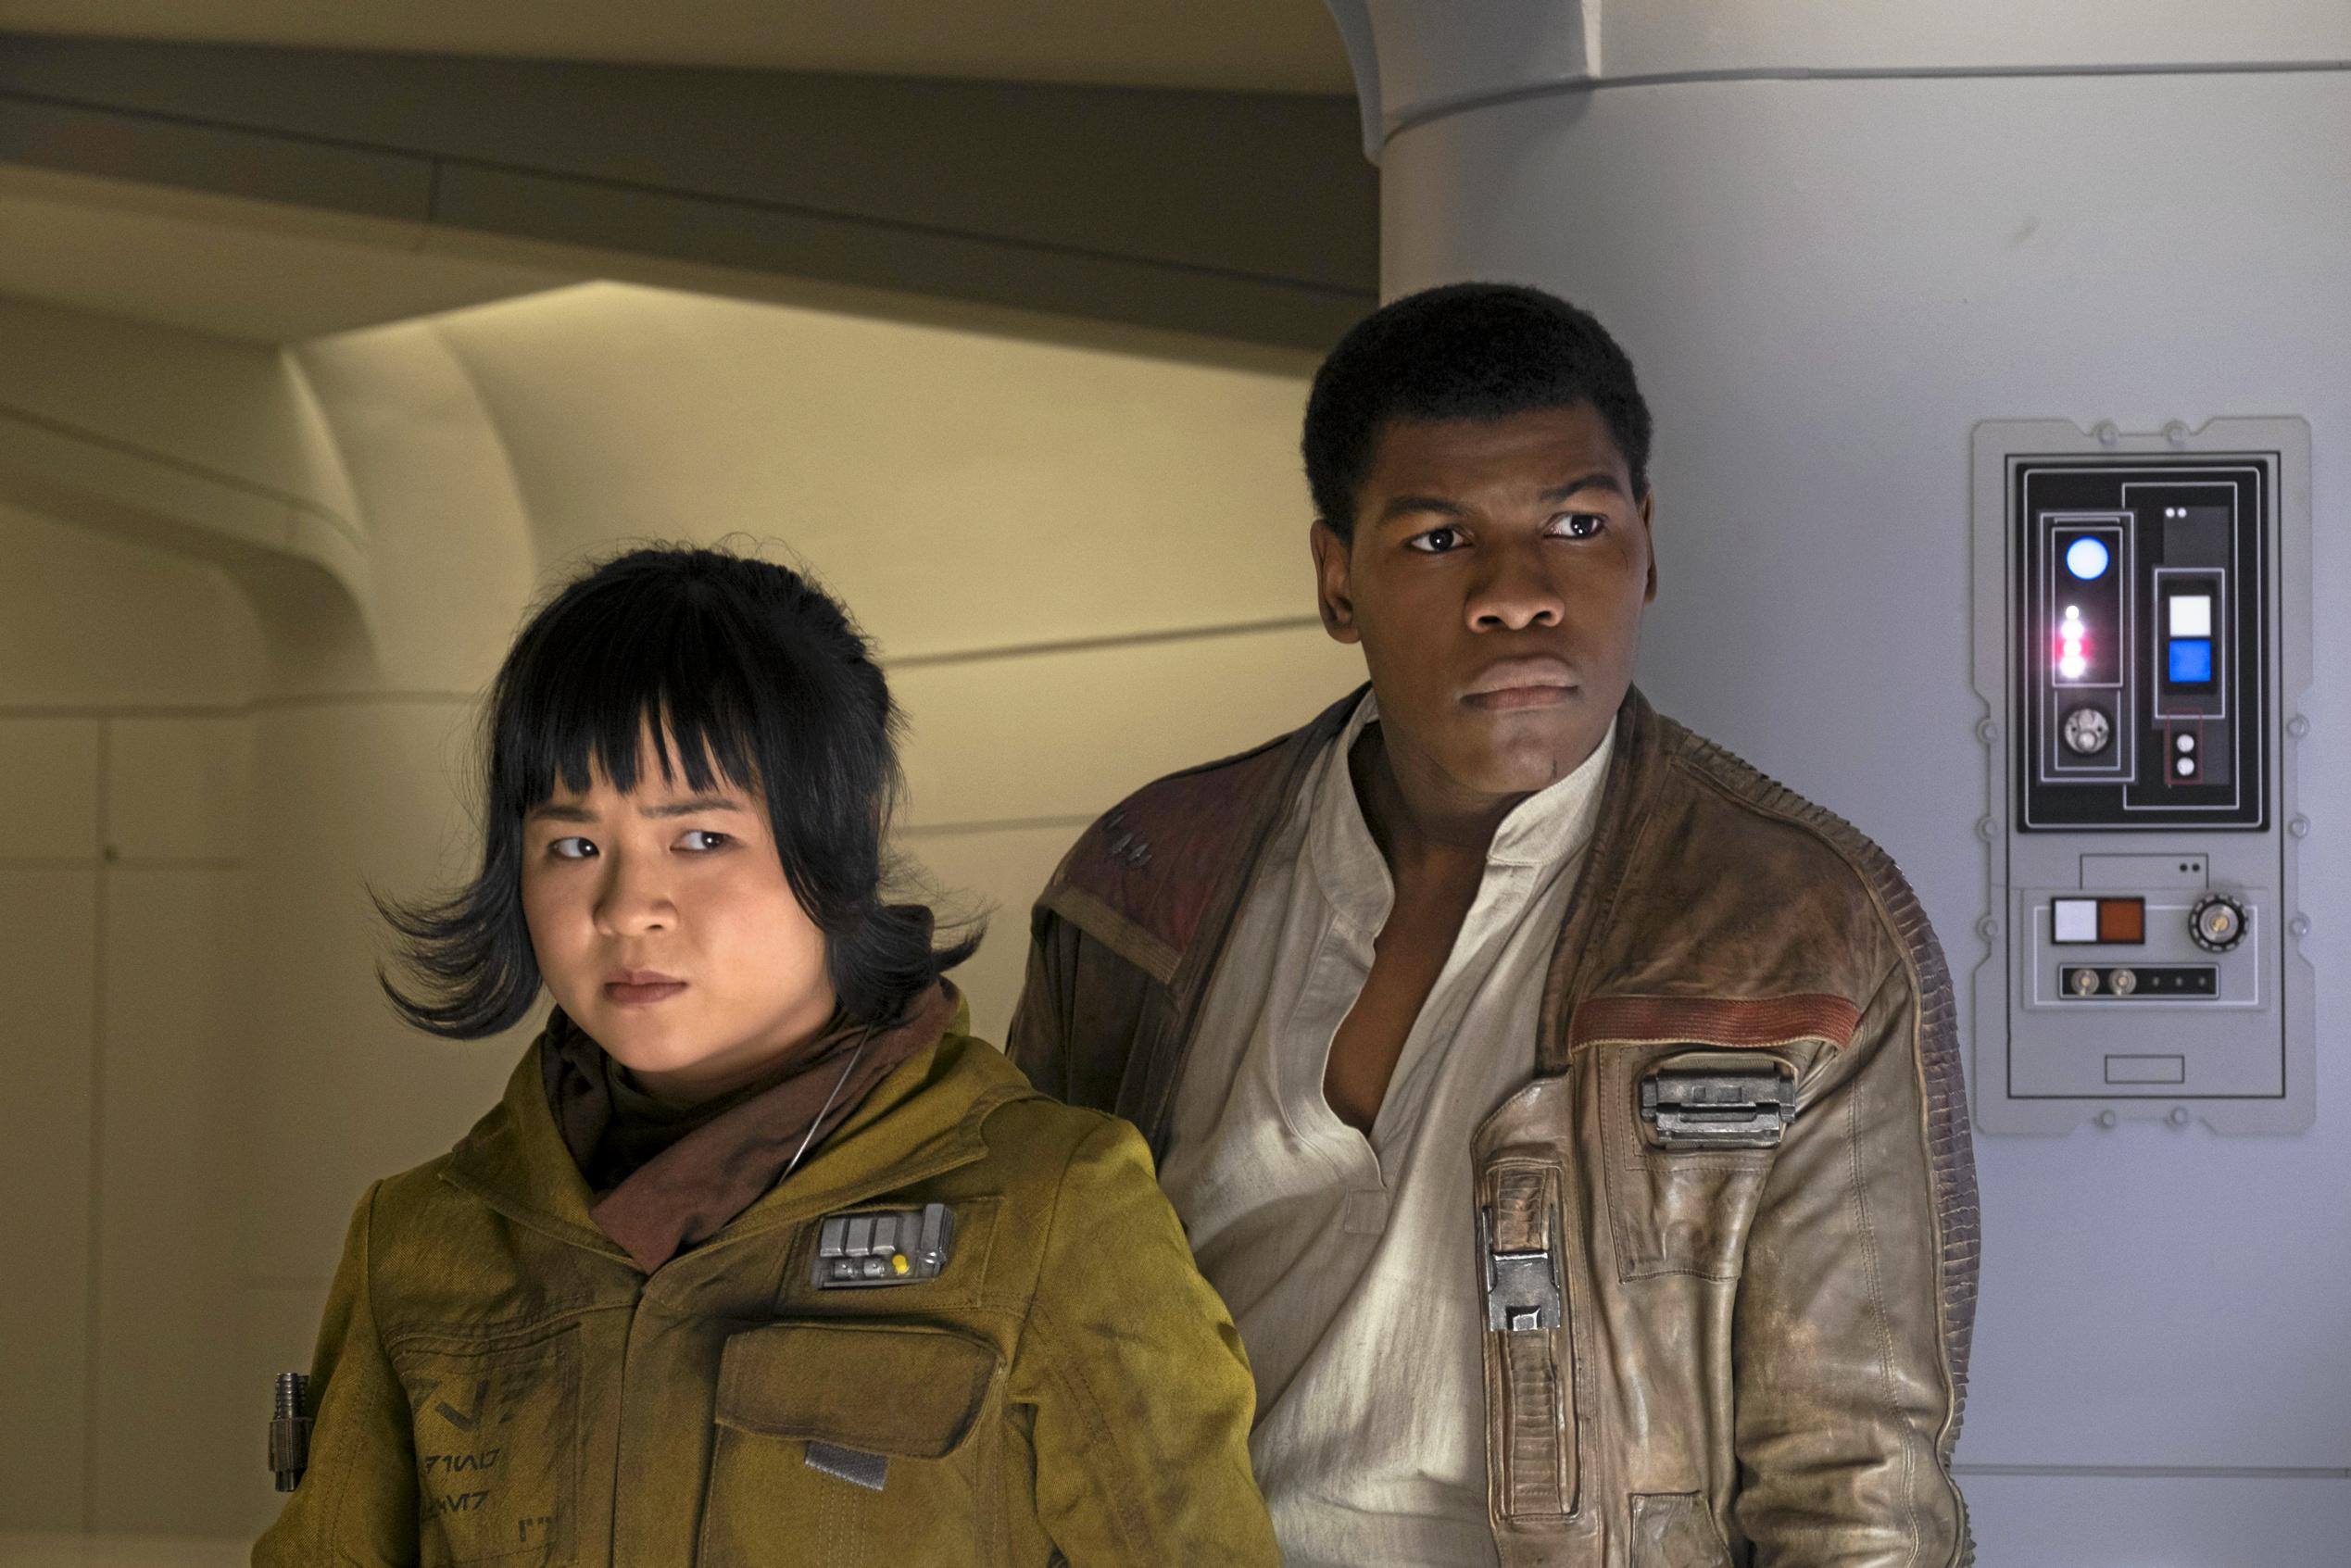 Kelly Marie Tran and John Boyega in a scene from the movie Star Wars: The Last Jedi. Supplied by Disney.